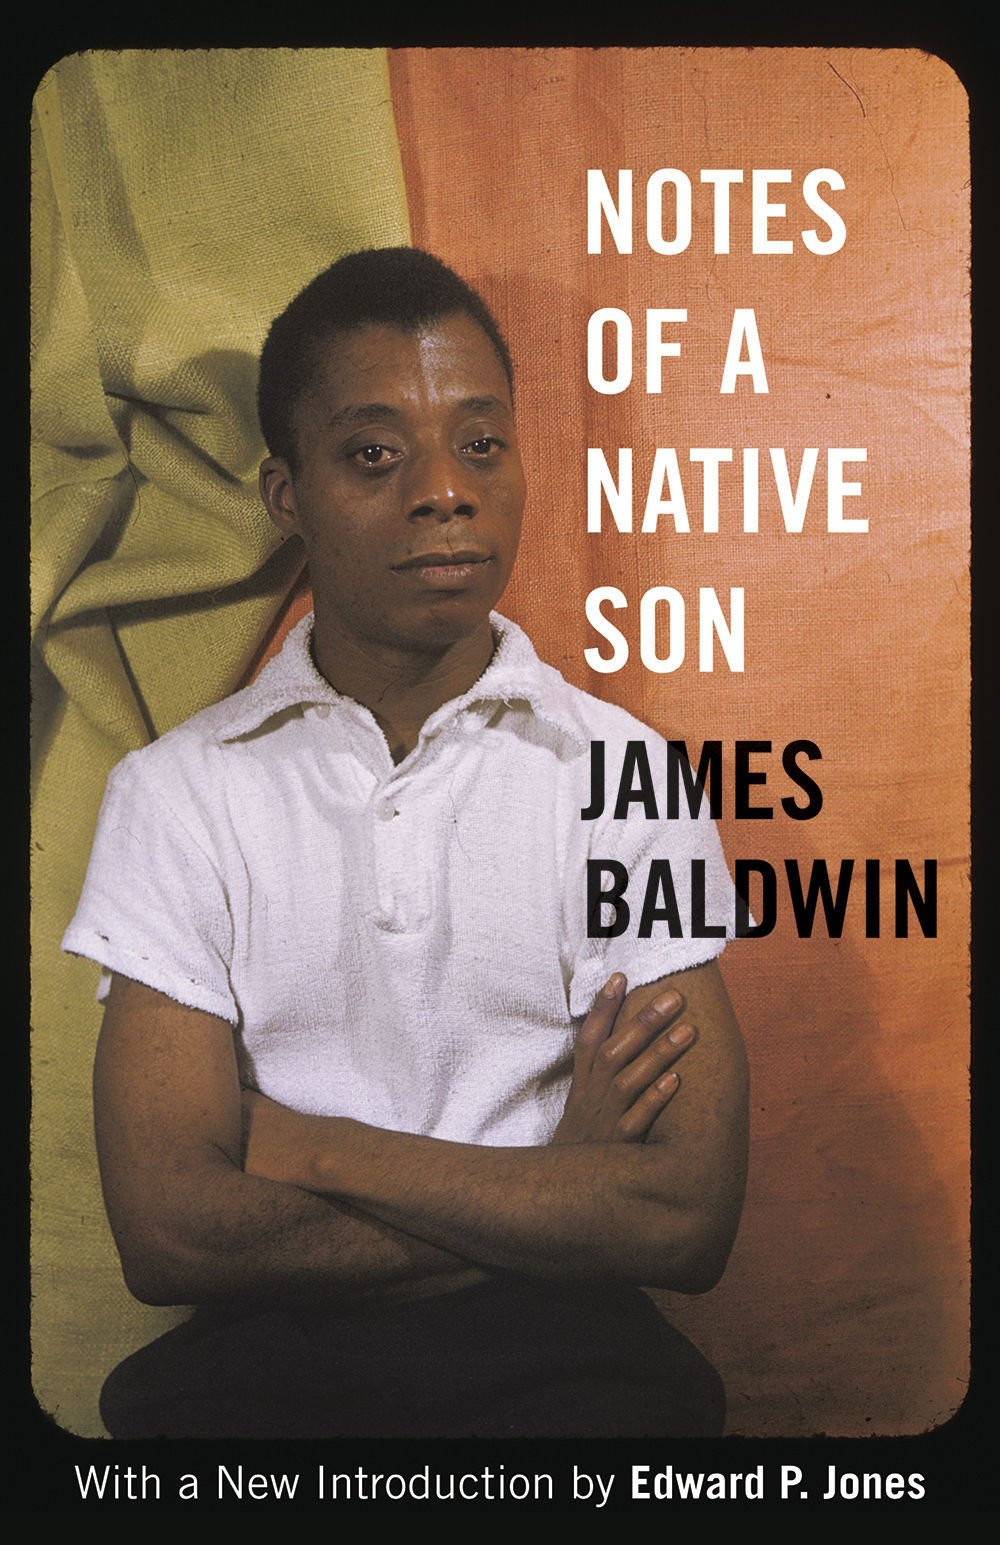 james baldwin finally receives his kudos lifestyle com james baldwin